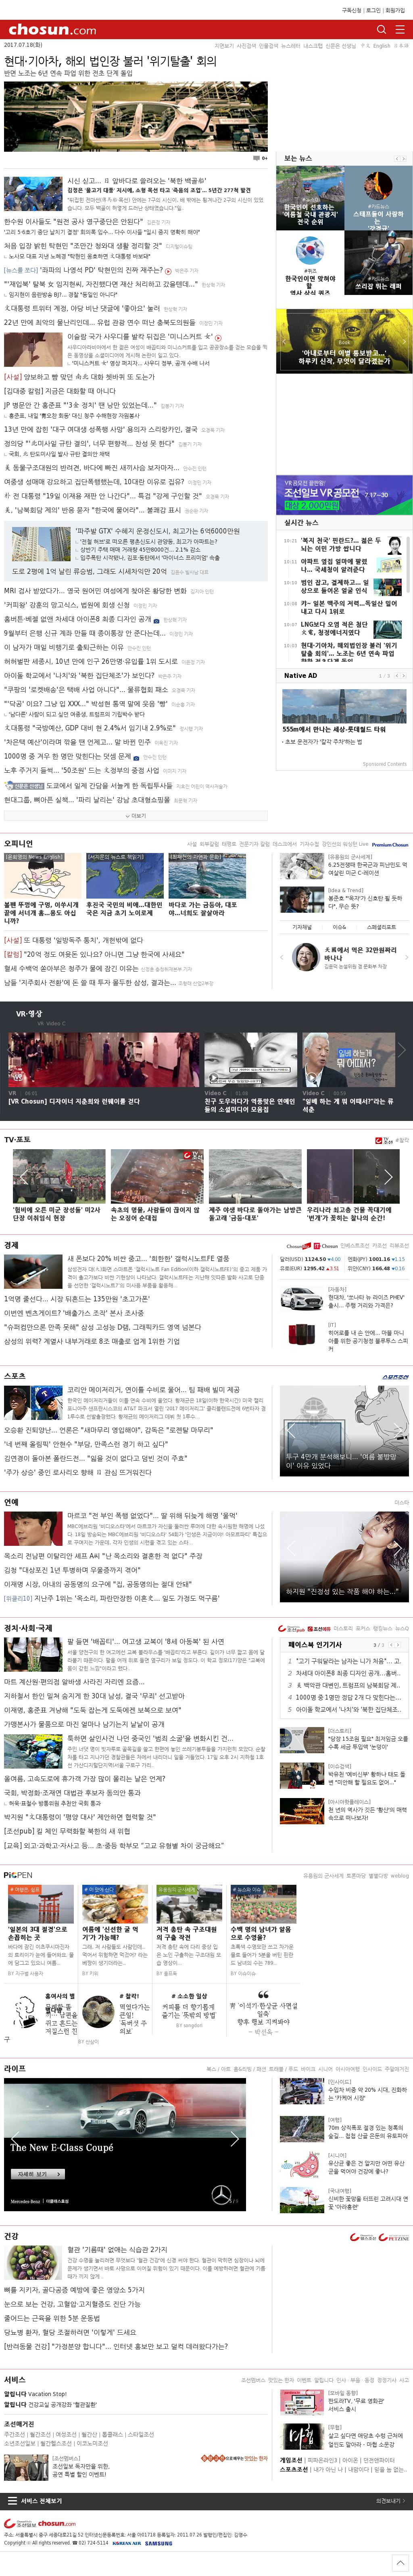 chosun.com at Tuesday July 18, 2017, 11:02 a.m. UTC